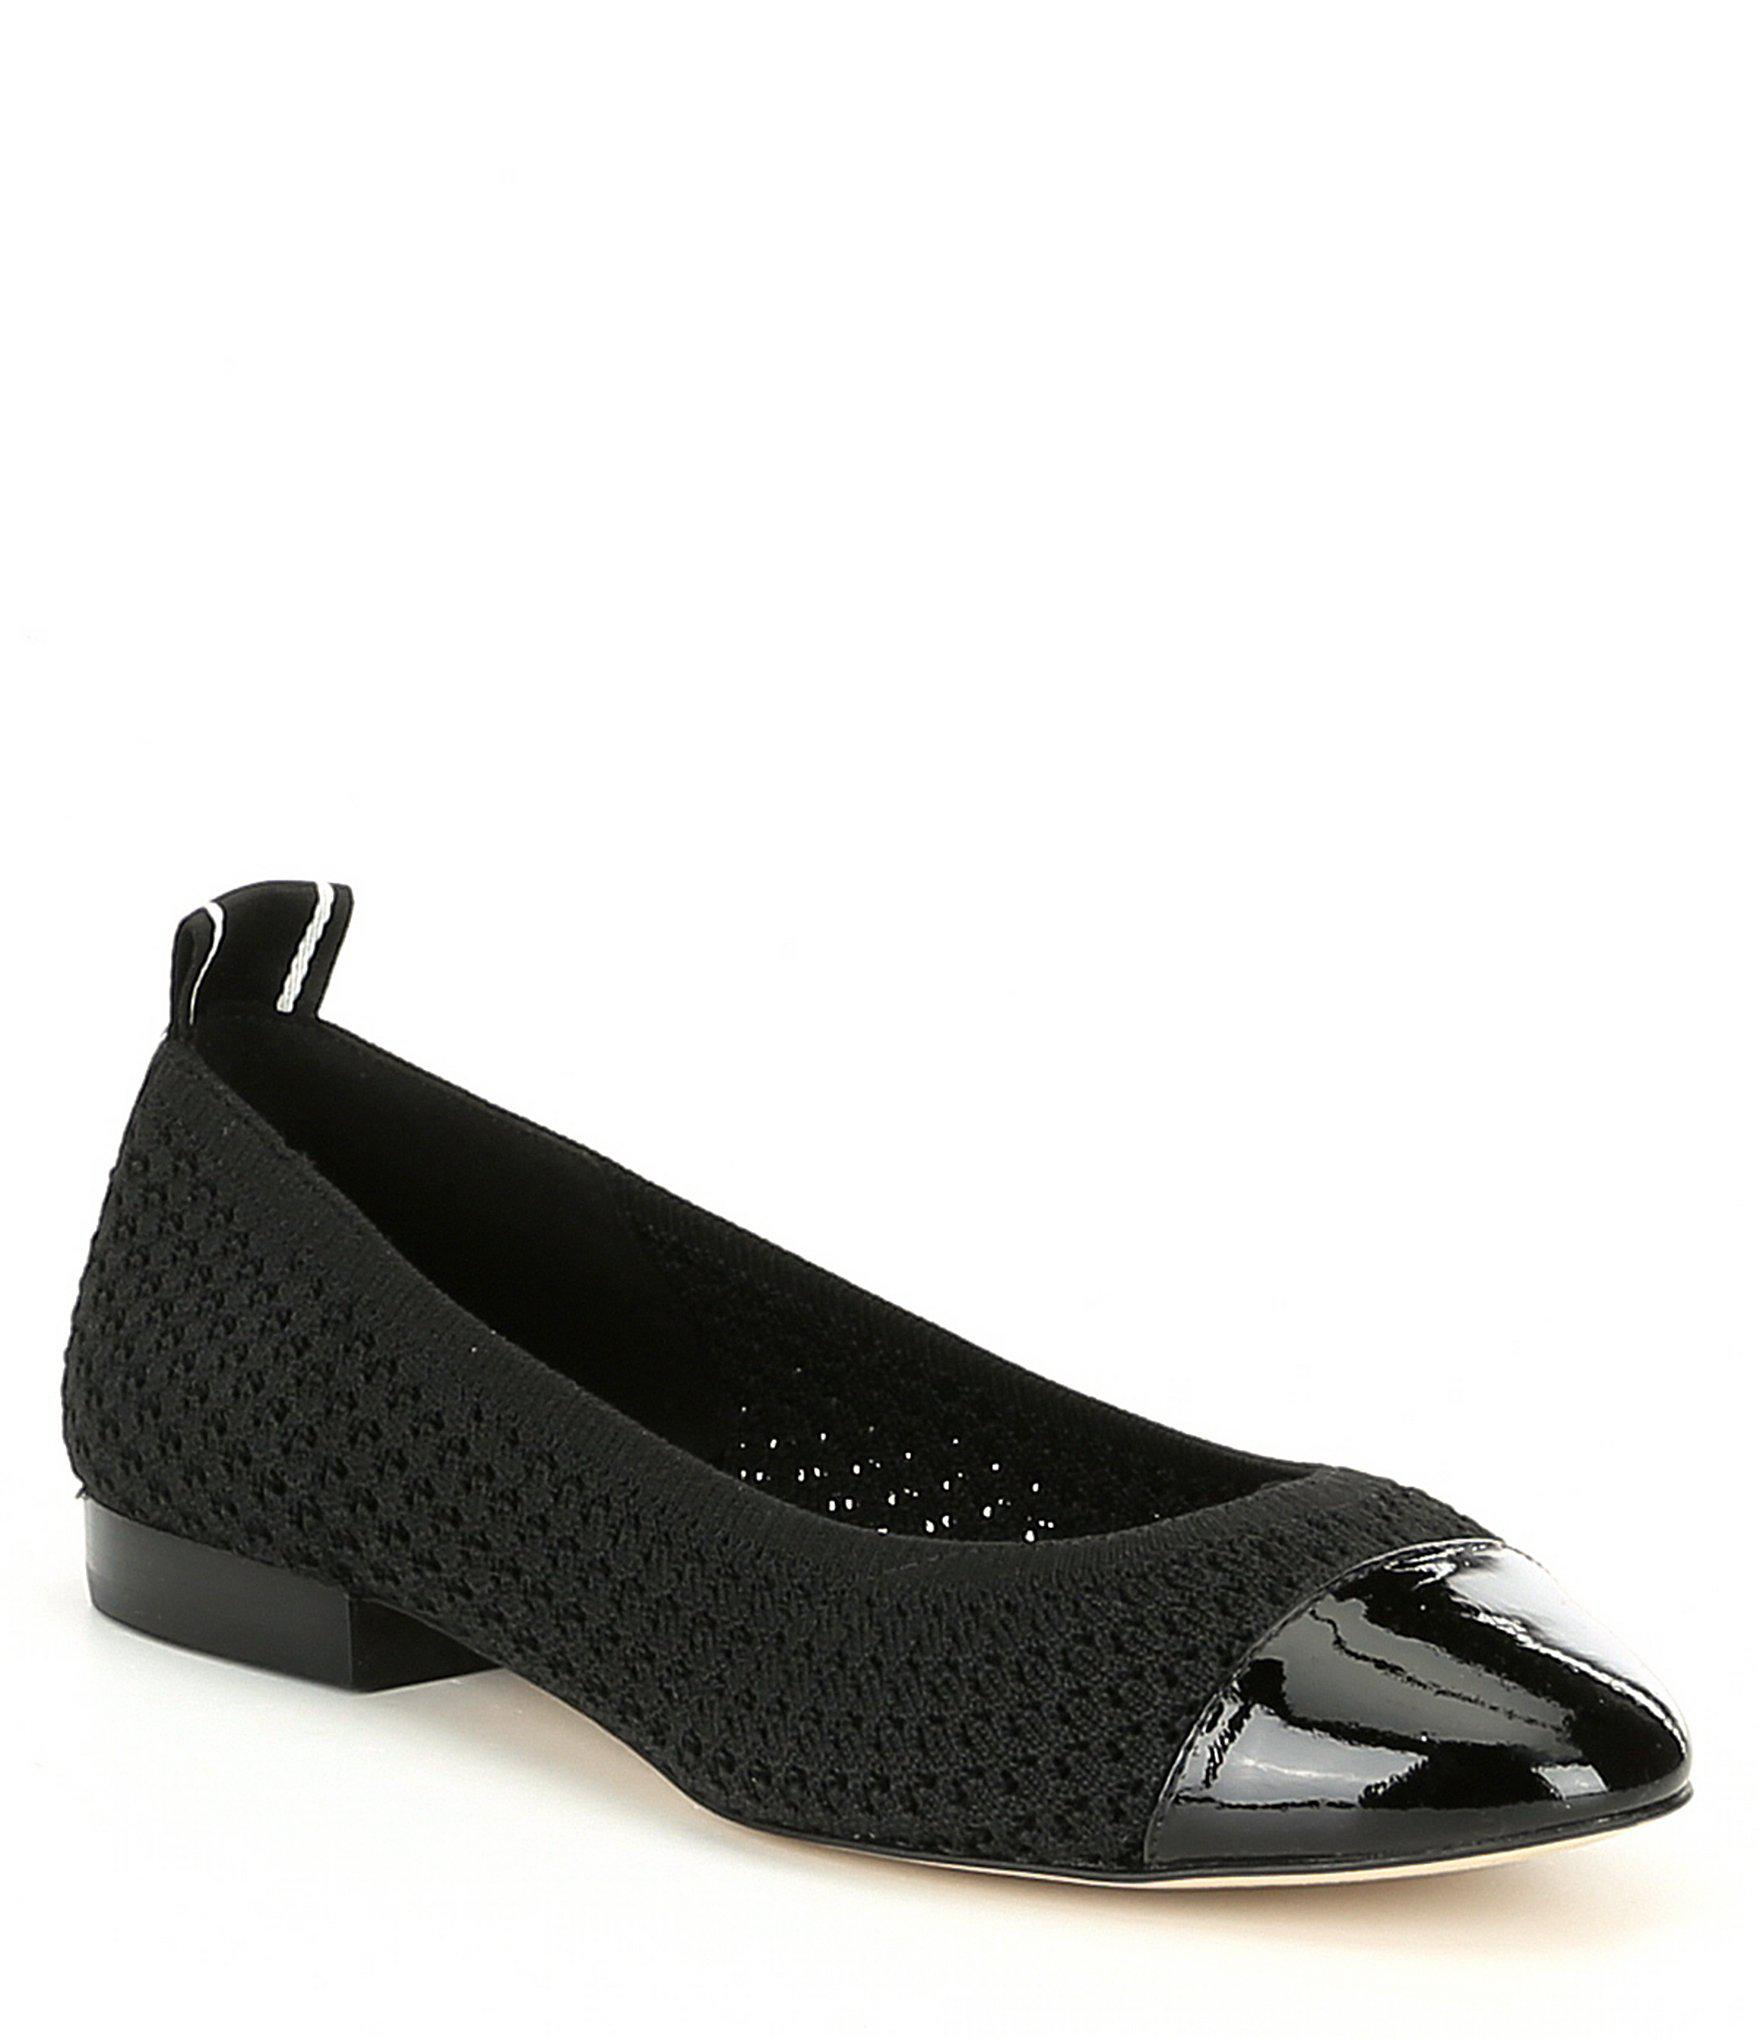 56f2c960147 Lyst - MICHAEL Michael Kors Vicky Ballet Flats in Black - Save 40%